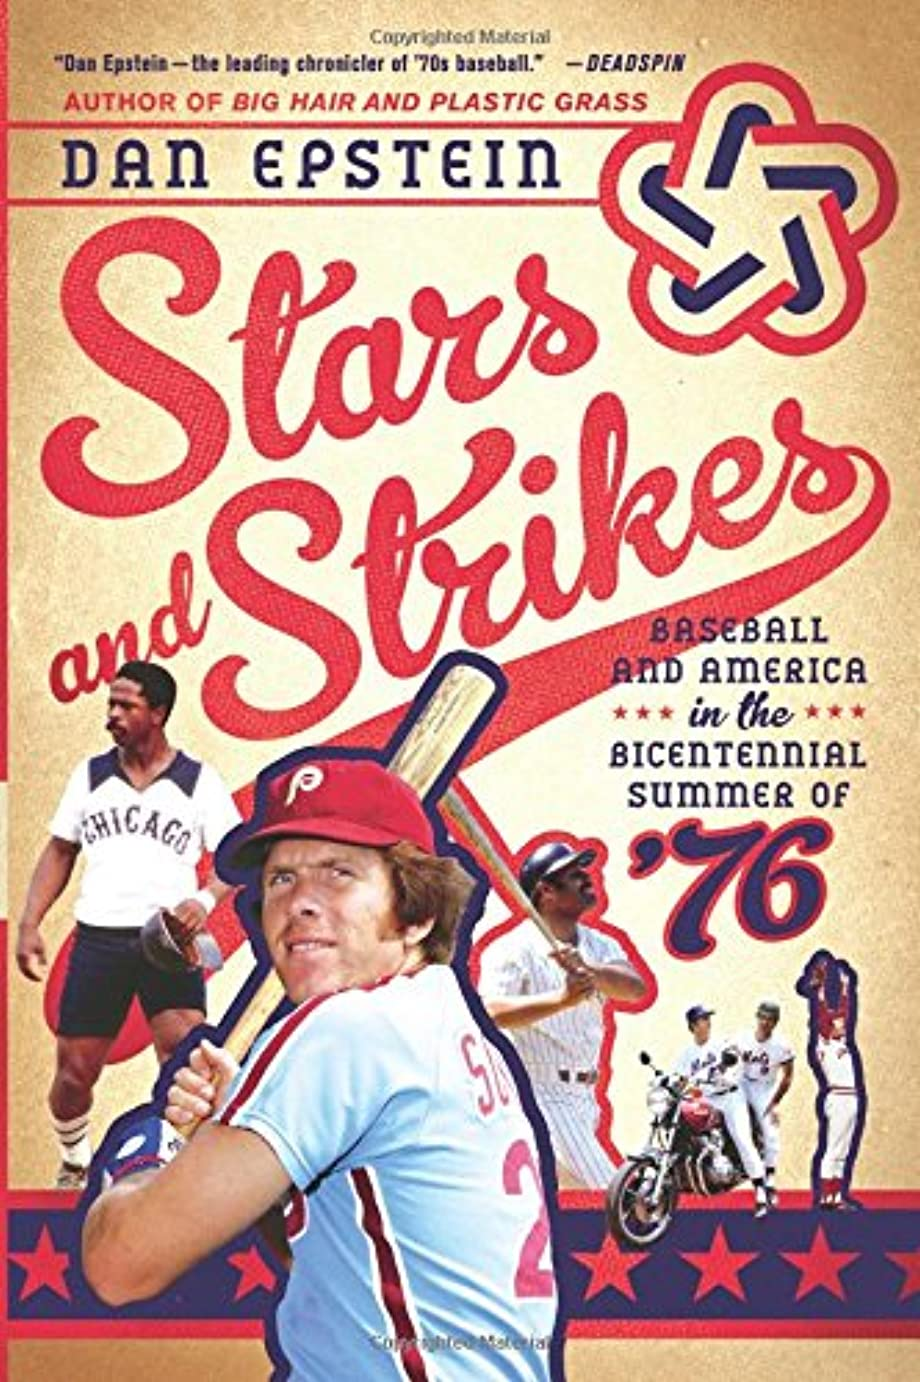 知性ベンチ追うStars and Strikes: Baseball and America in the Bicentennial Summer of  76